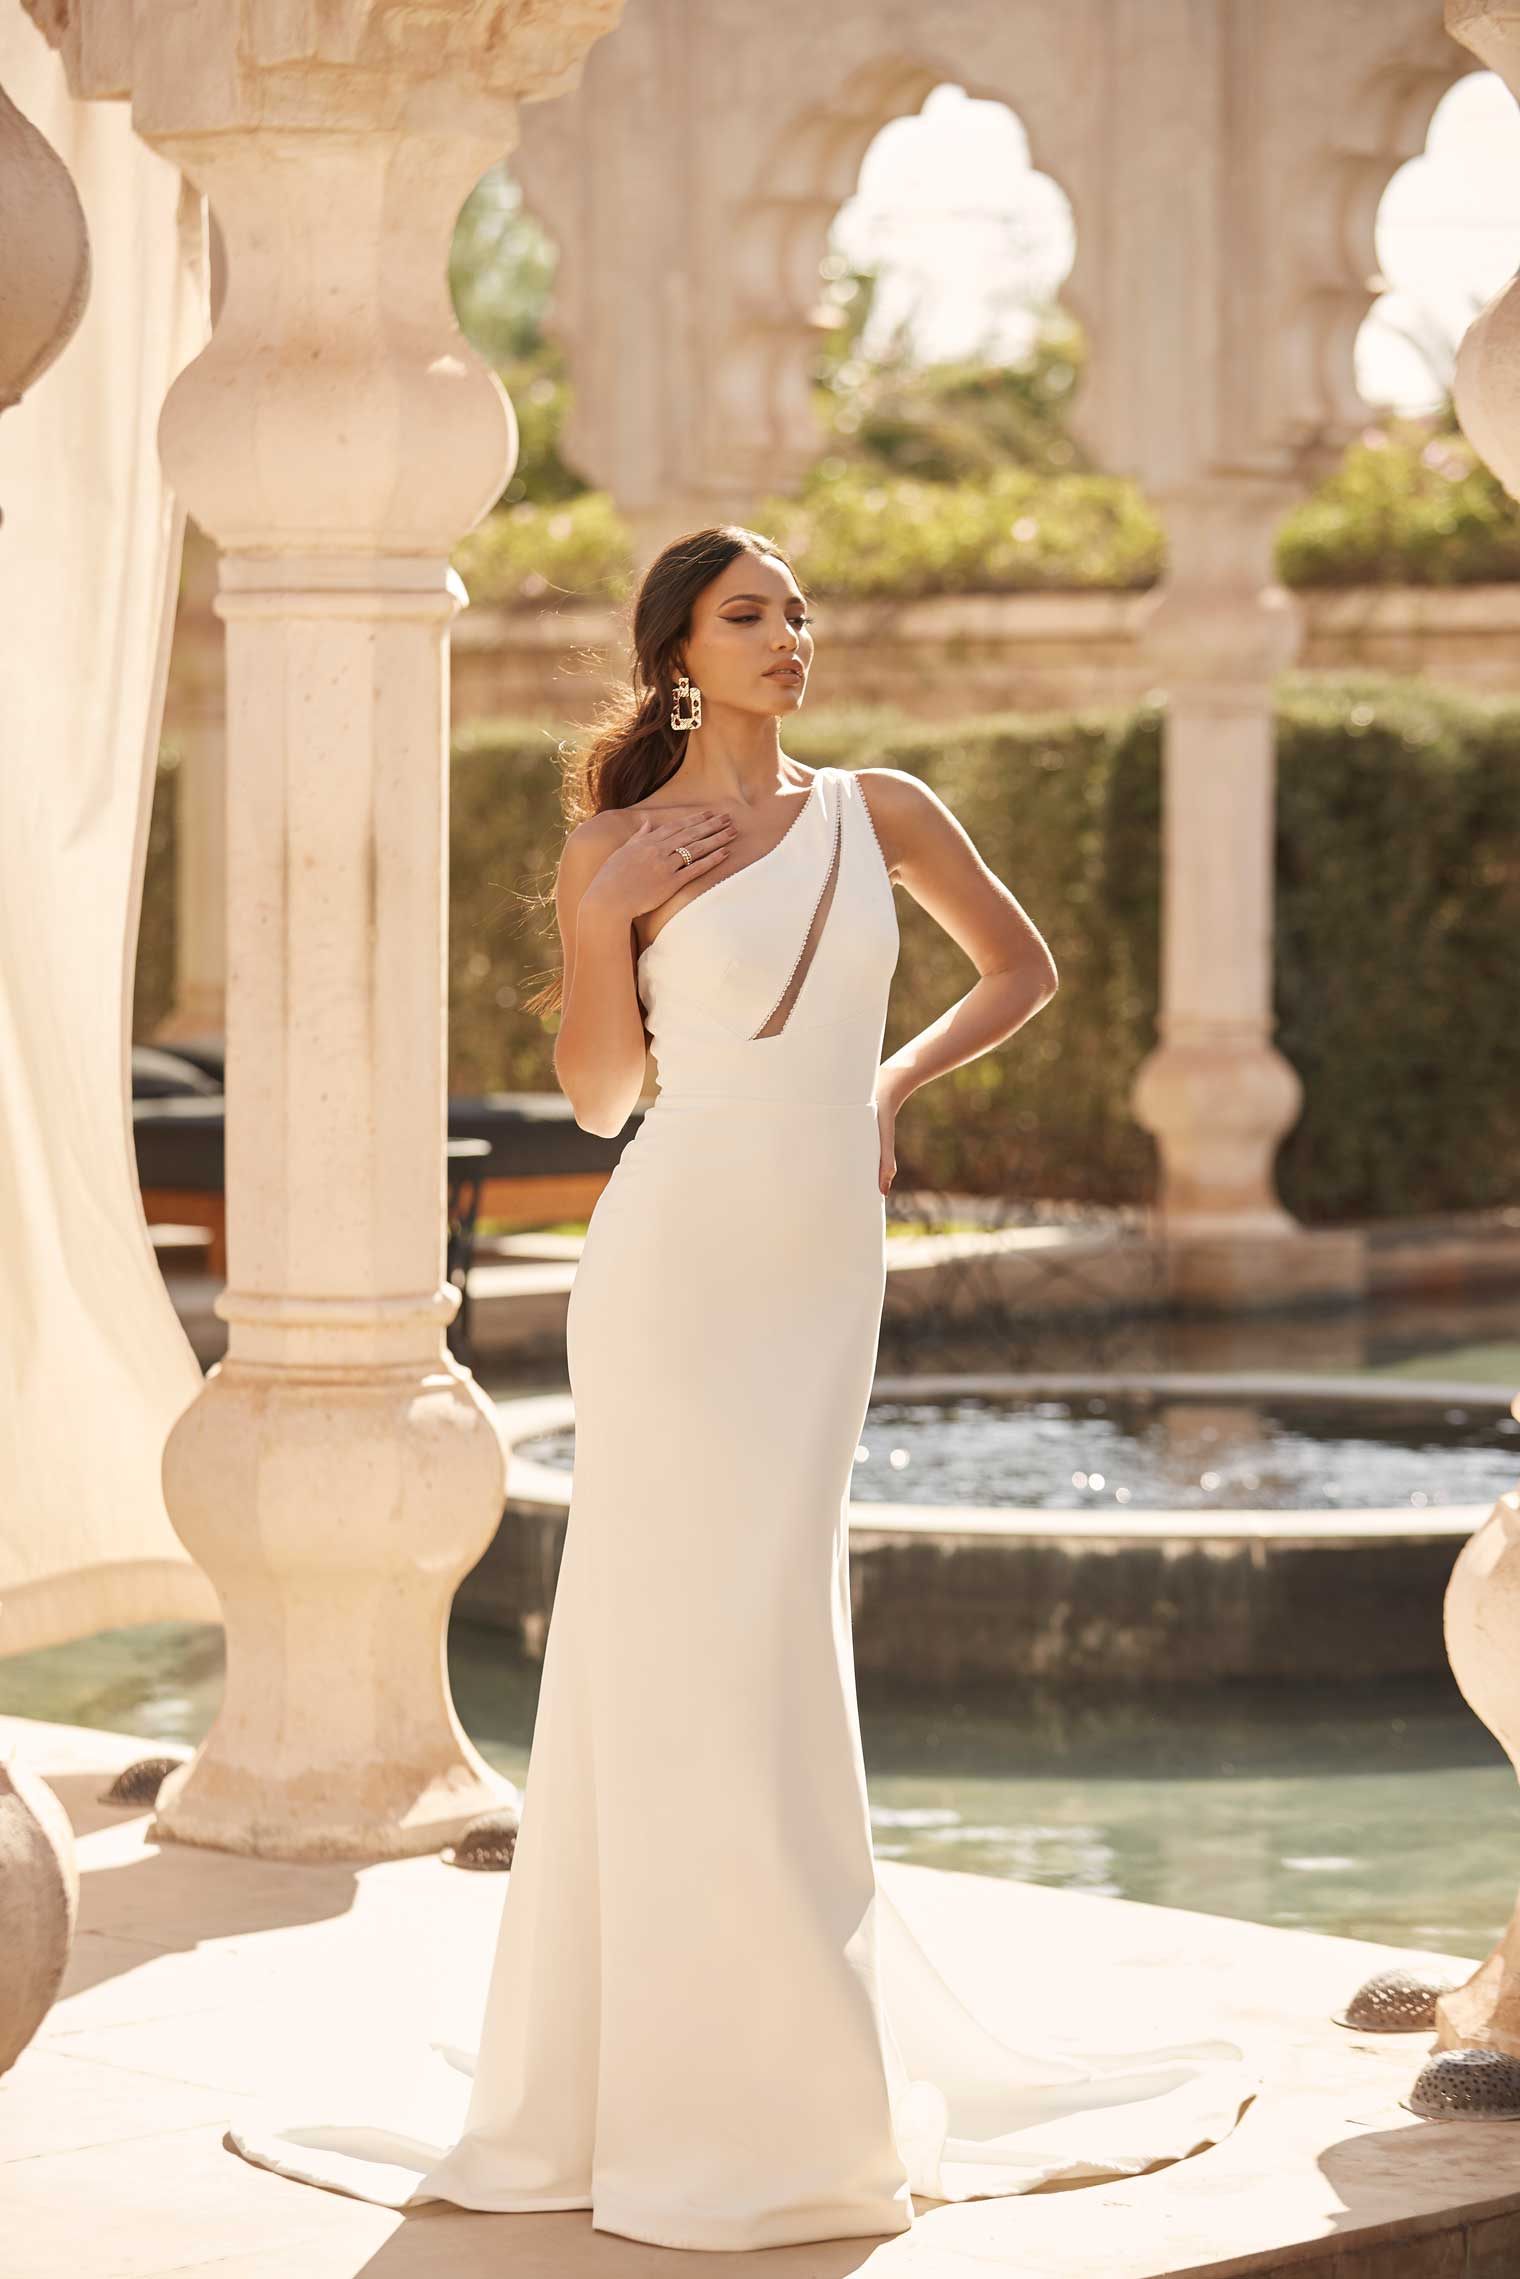 ARLO-ML16234-FULL-LENGTH-FITTED-CREPE-GOWN-WITH-SINGULAR-SHOULDER-STRAP-TIE-UP-BOW-ON-BACK-AND-ZIP-CLOSURE-WEDDING-DRESS-MADI-LANE-BRIDAL1